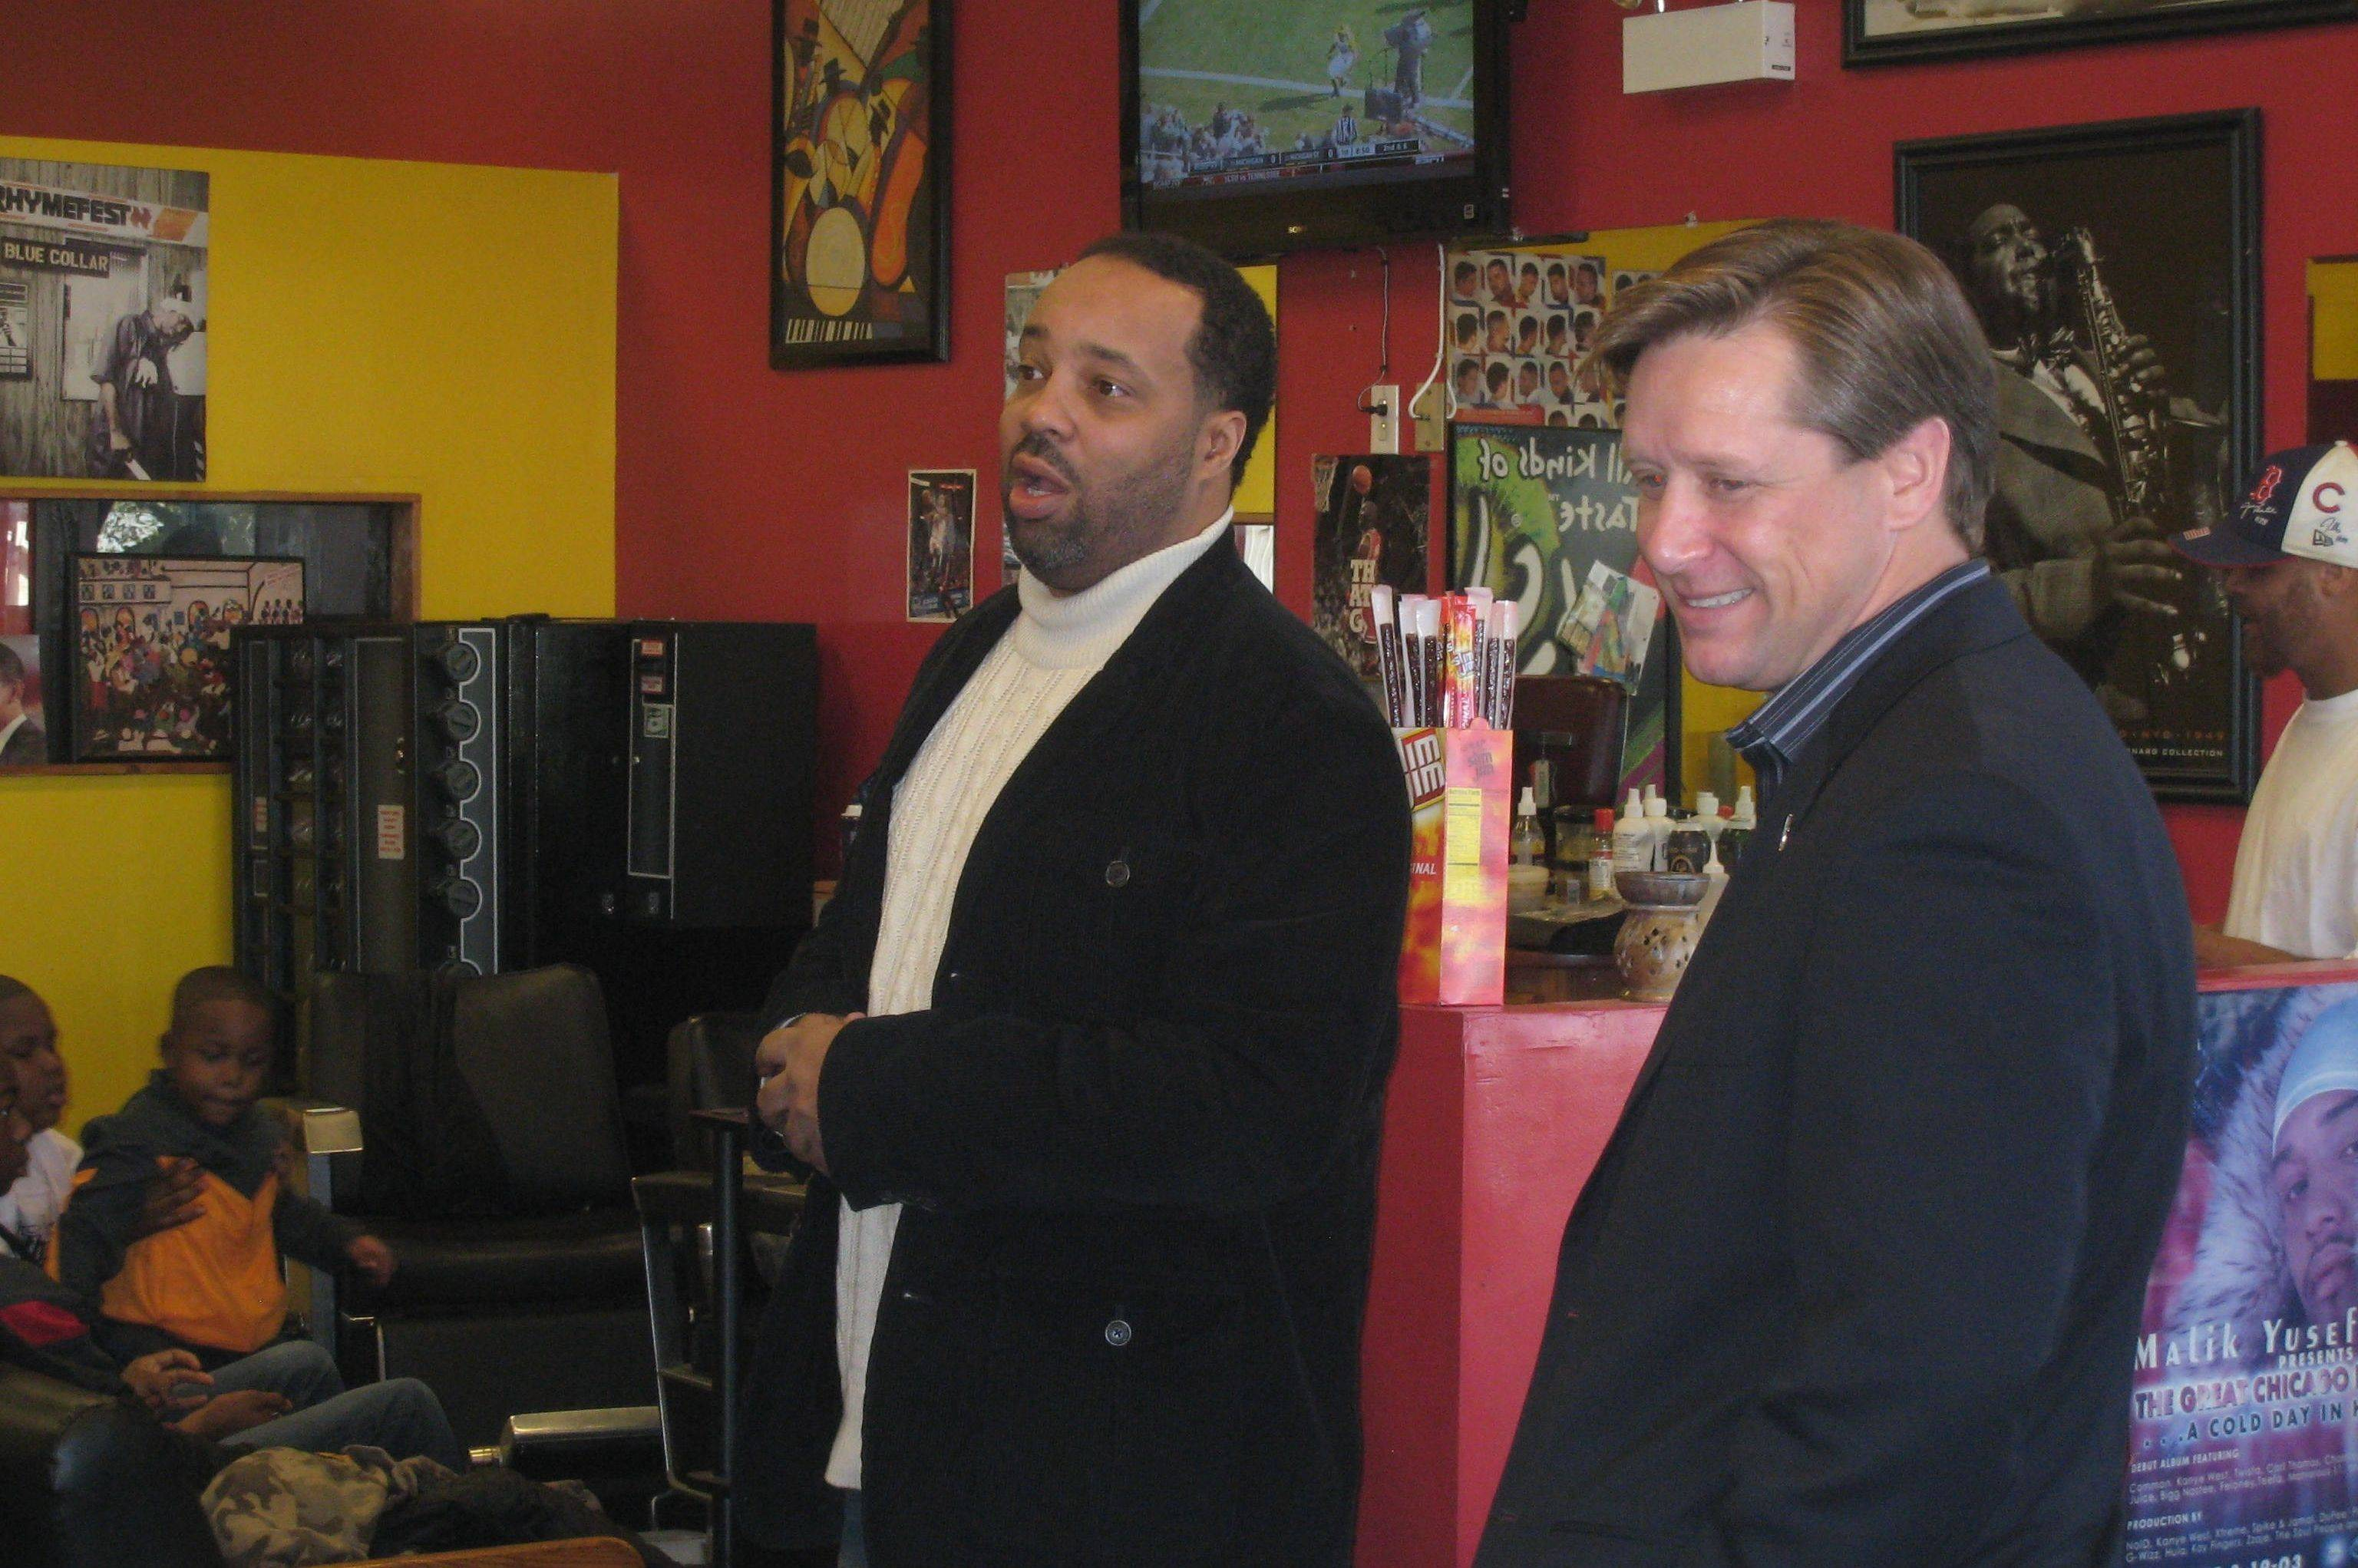 State Sen. Dan Duffy, right, who visited South Side barbershops with the Young Government group, says Republicans need to engage the black electorate.